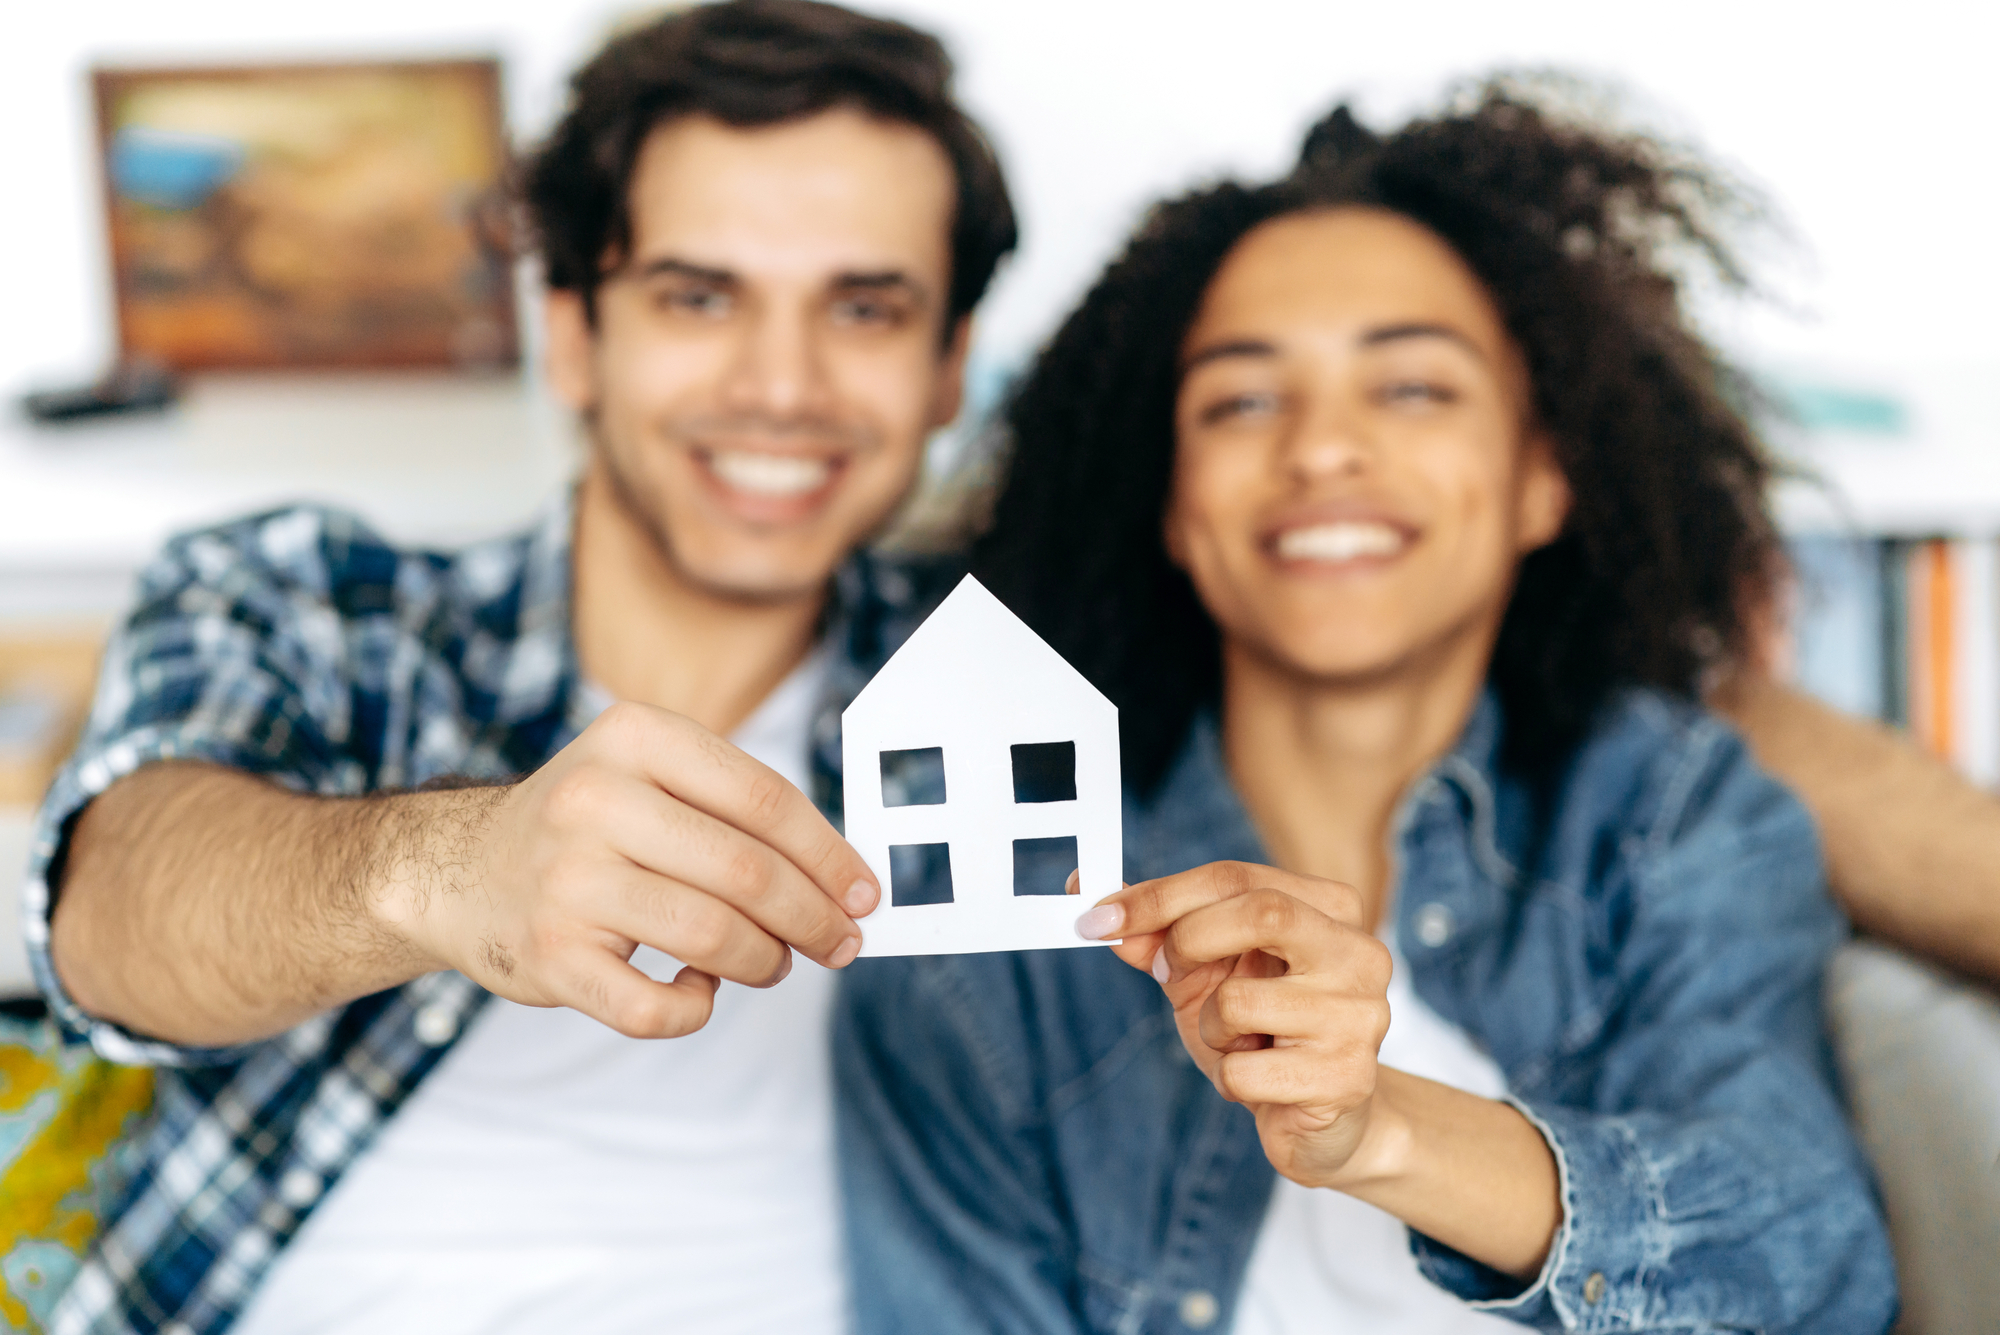 New home owners Joyful multiethnic couple holding paper house, sitting on a sofa in their new modern apartment or house